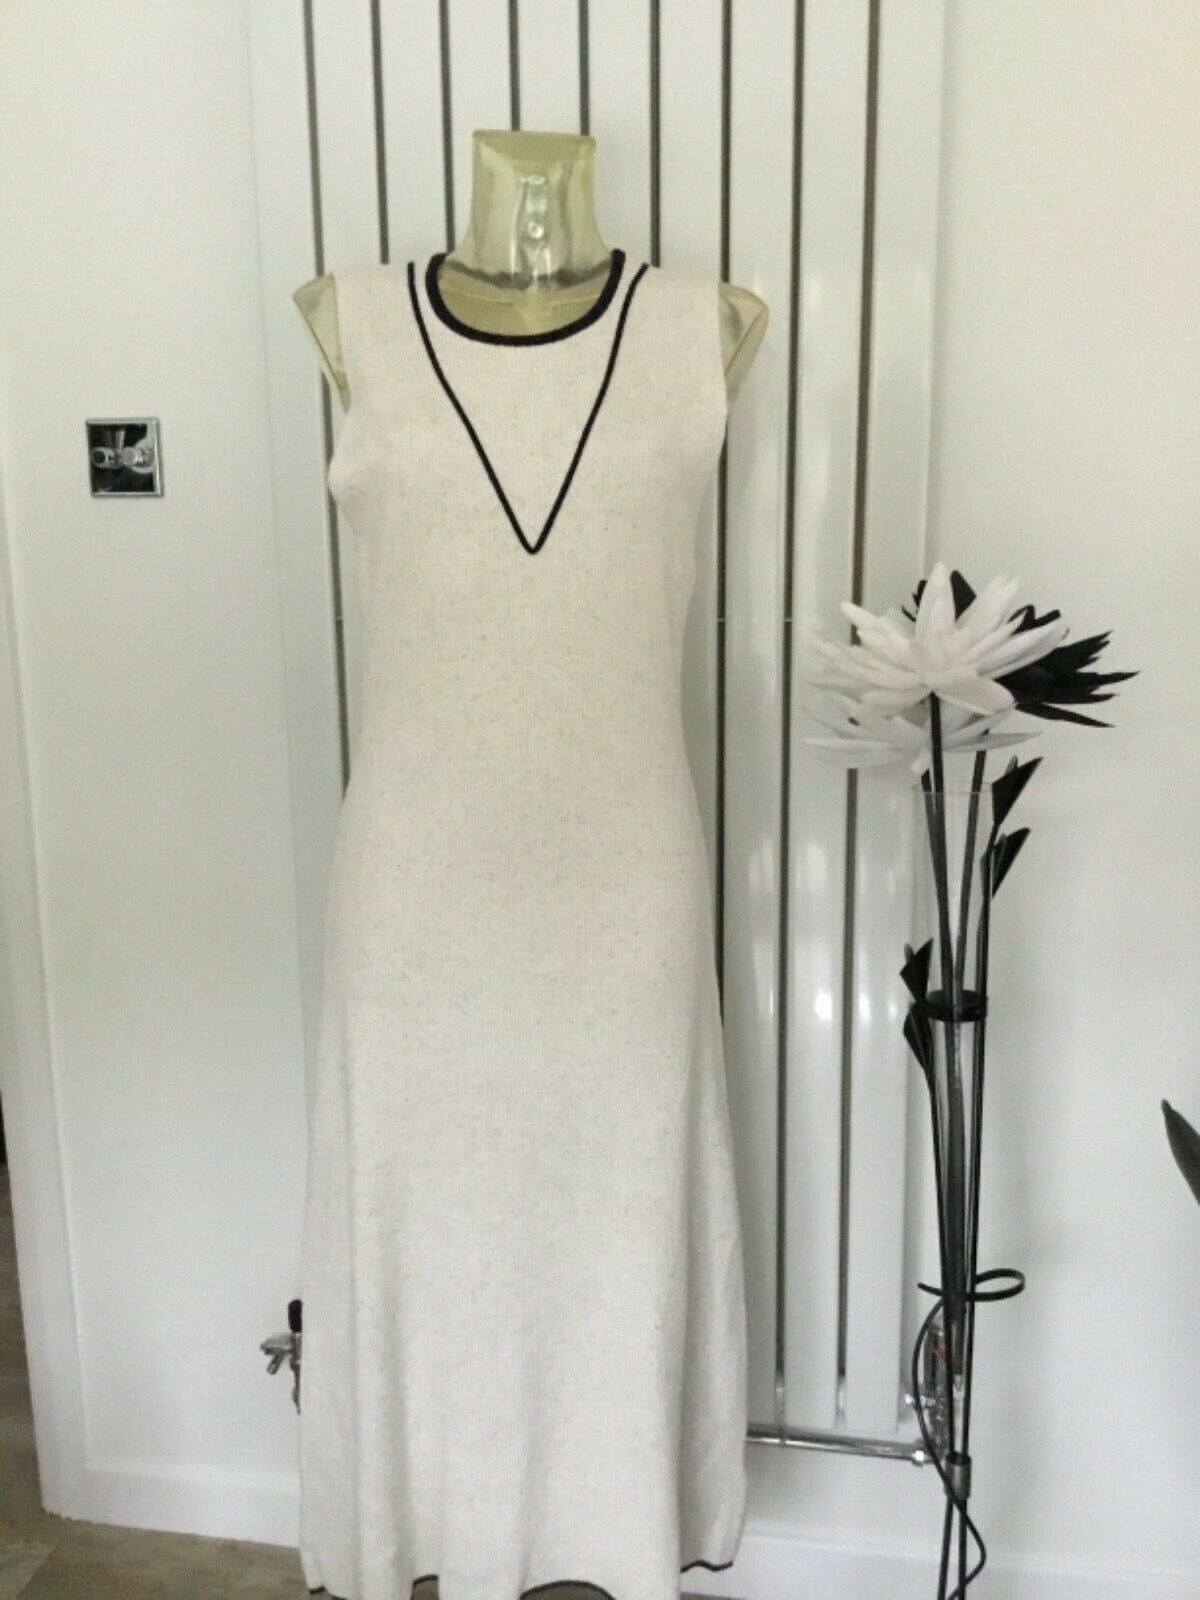 M&S Marks Spencer Tipped Knitted Maxi/Long Dress Oatmeal  Size XL RRP £39.50